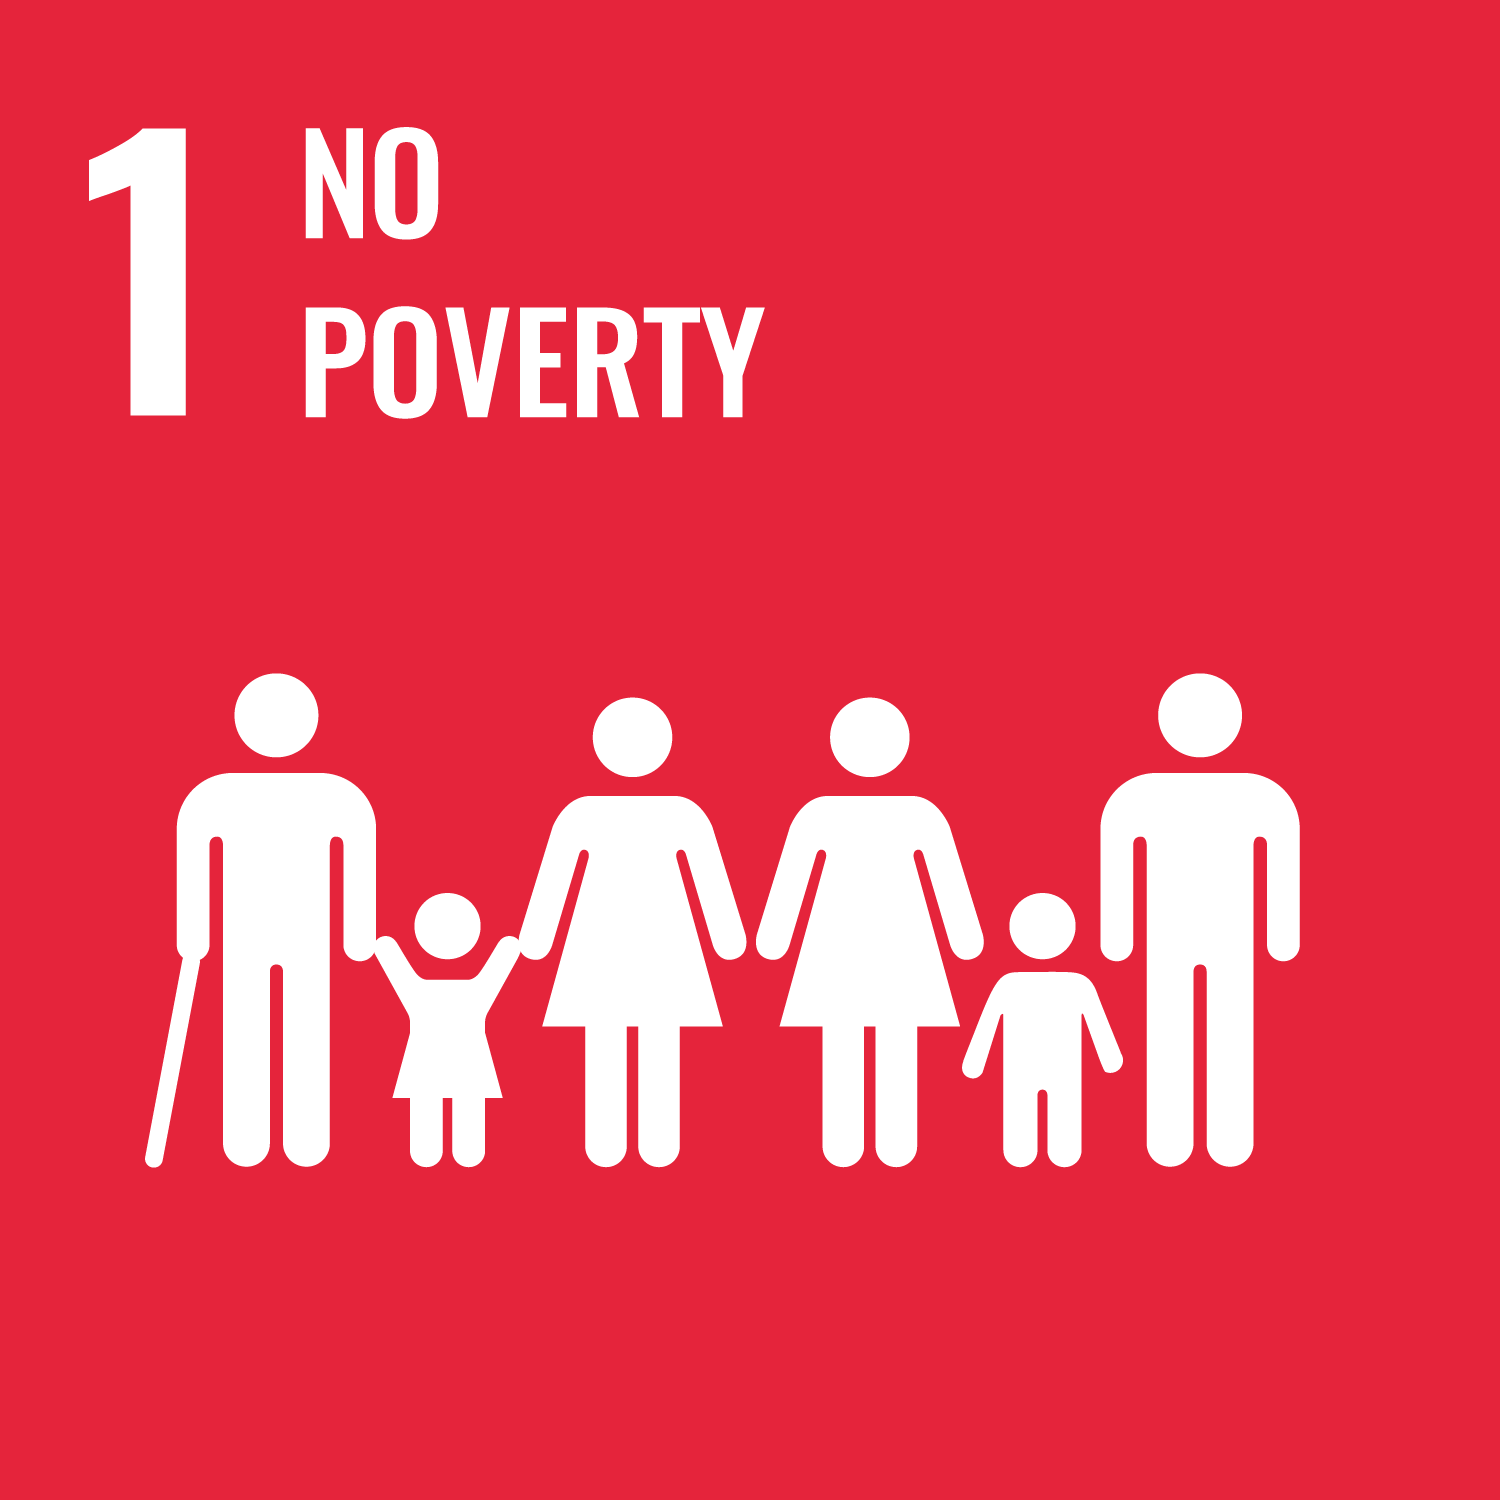 No poverty.